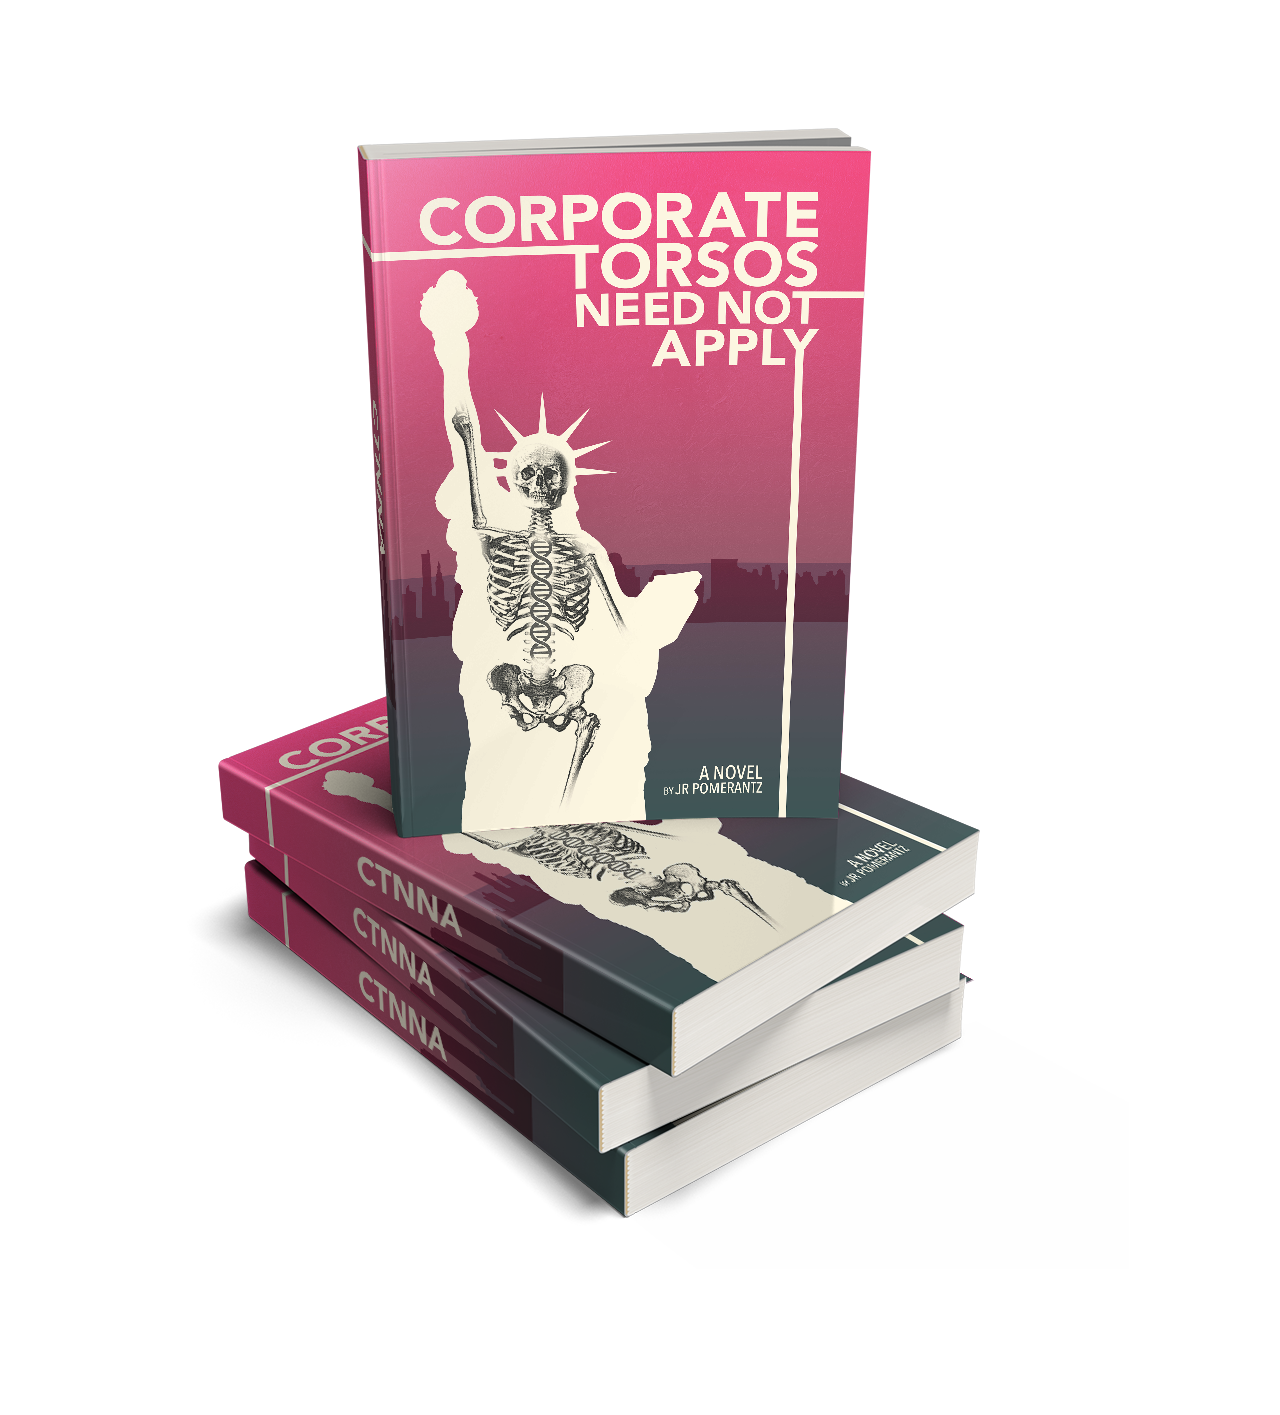 Corporate Torsos book stack